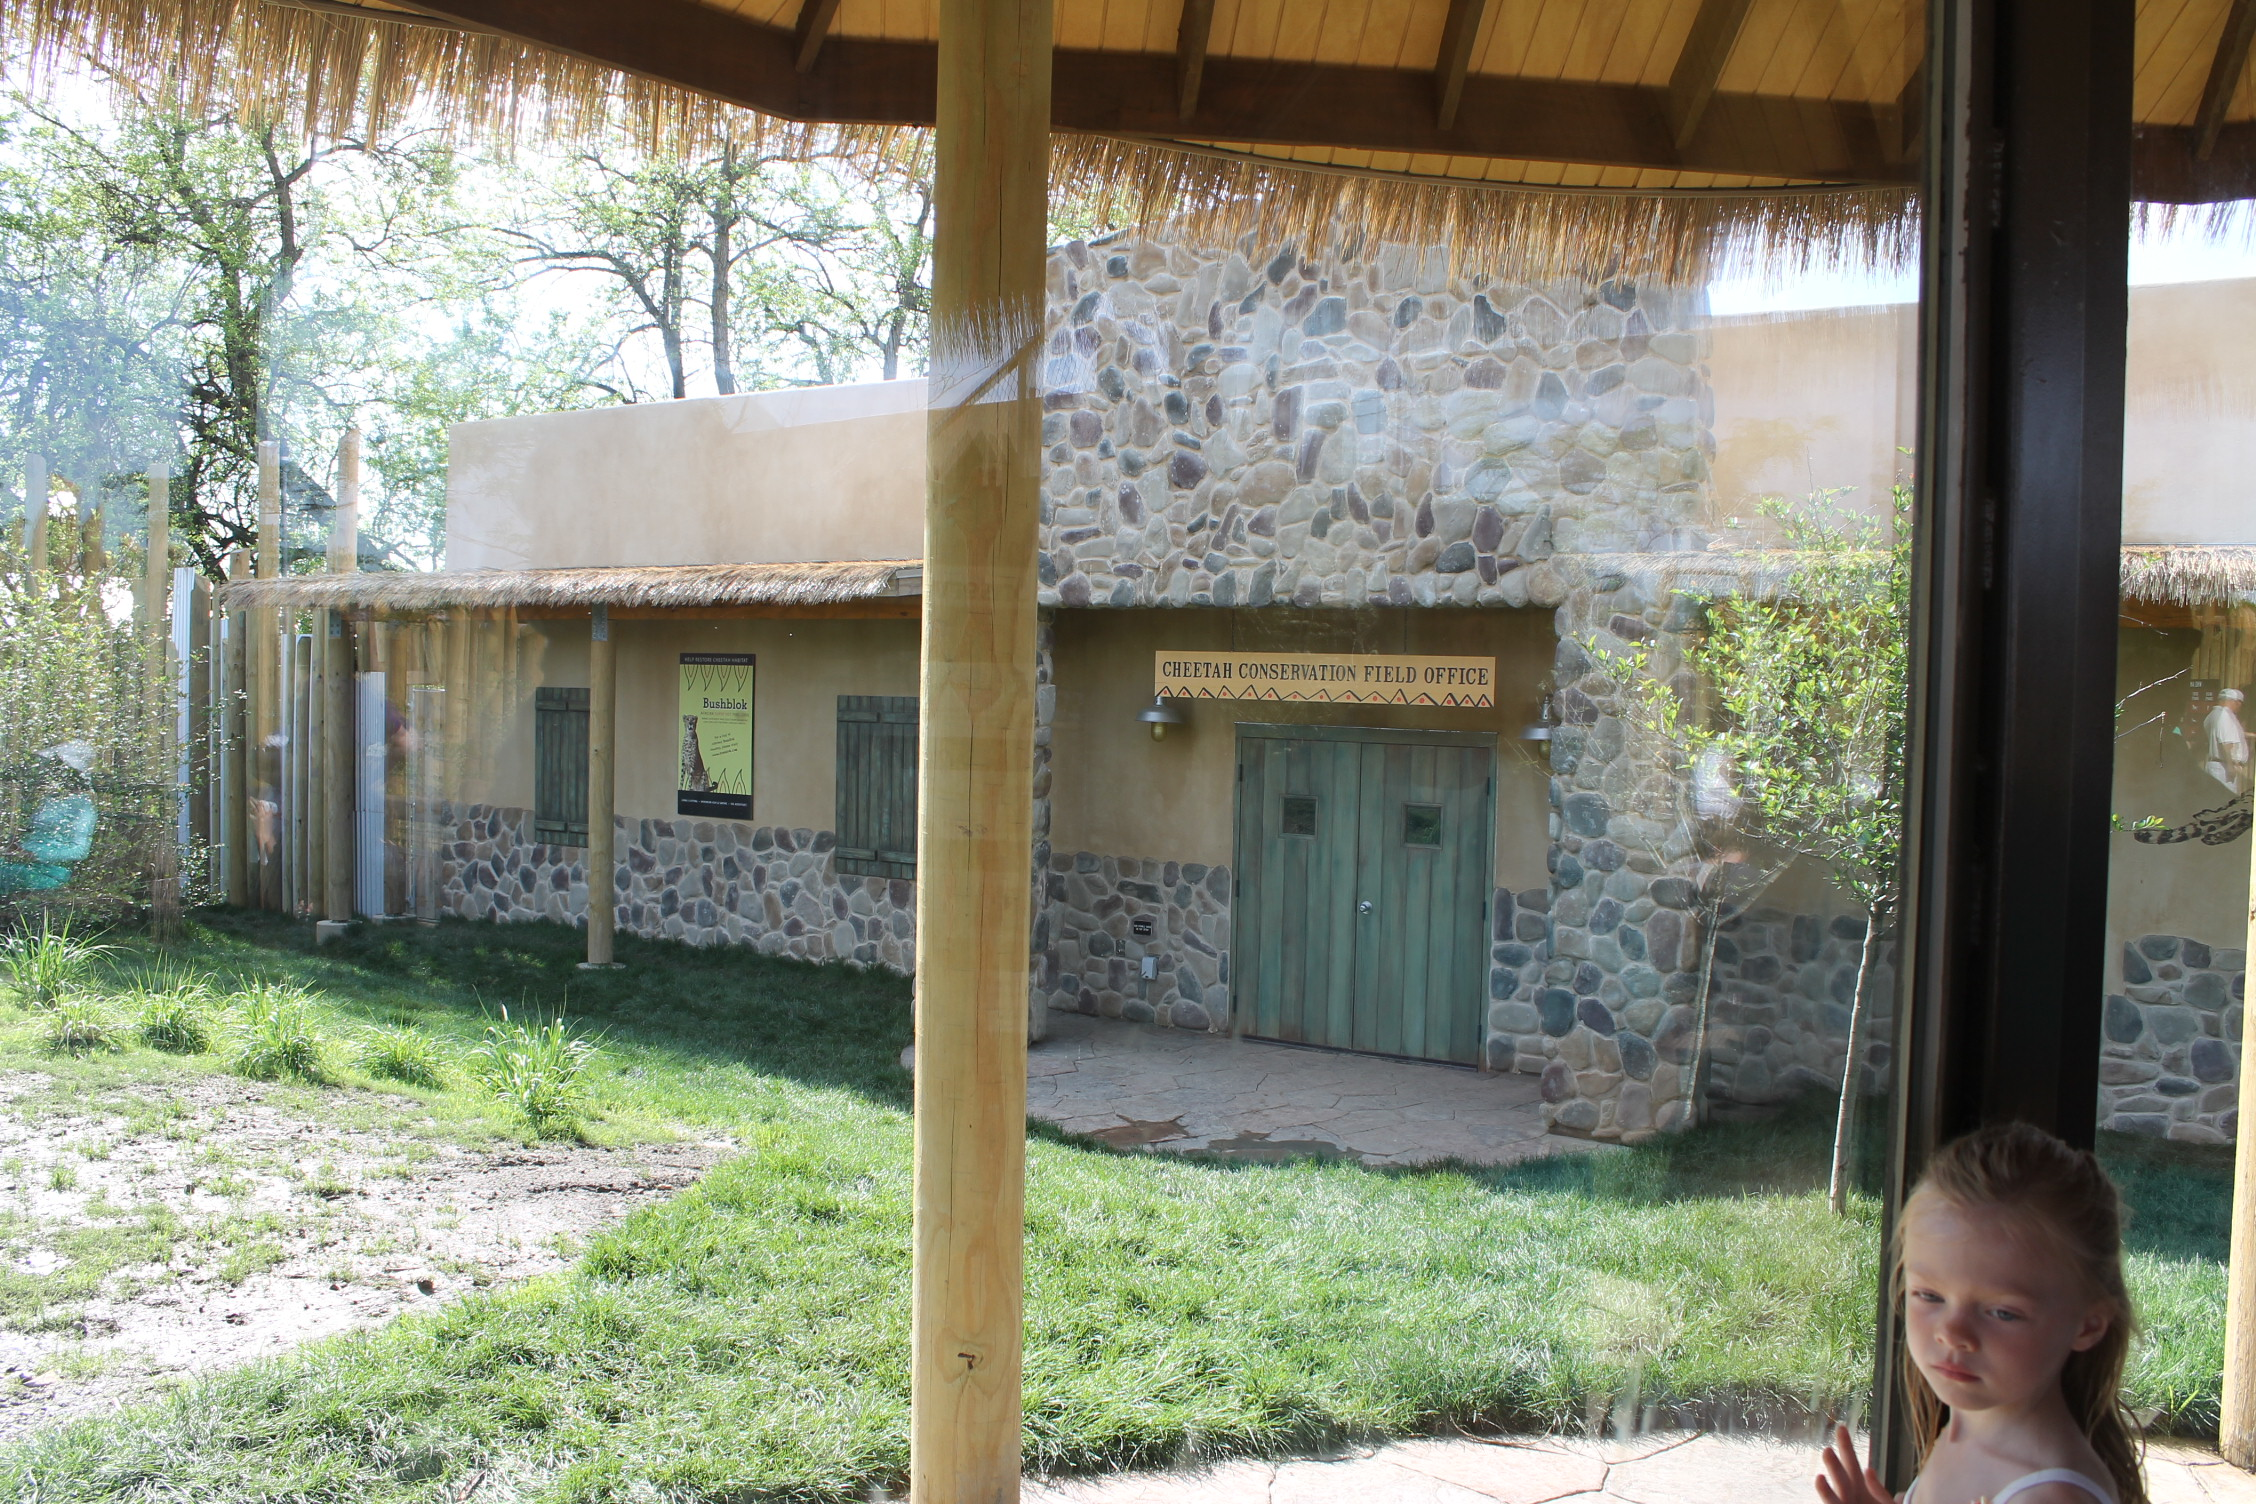 The cheetahs permanent home; Themed to Cheetah Conservation Fun headquarters.